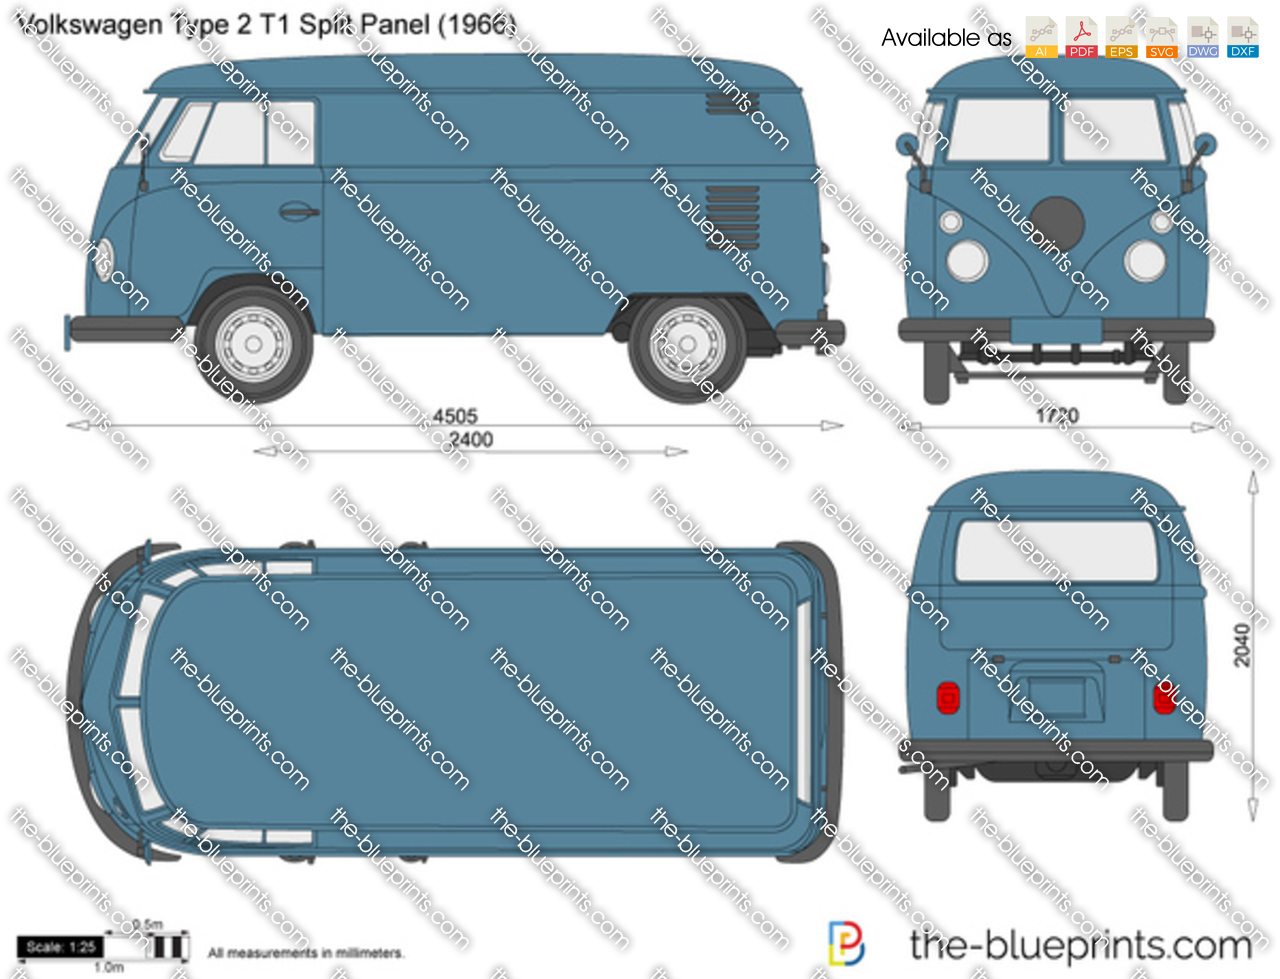 Volkswagen Type 2 T1 Split Panel 1951